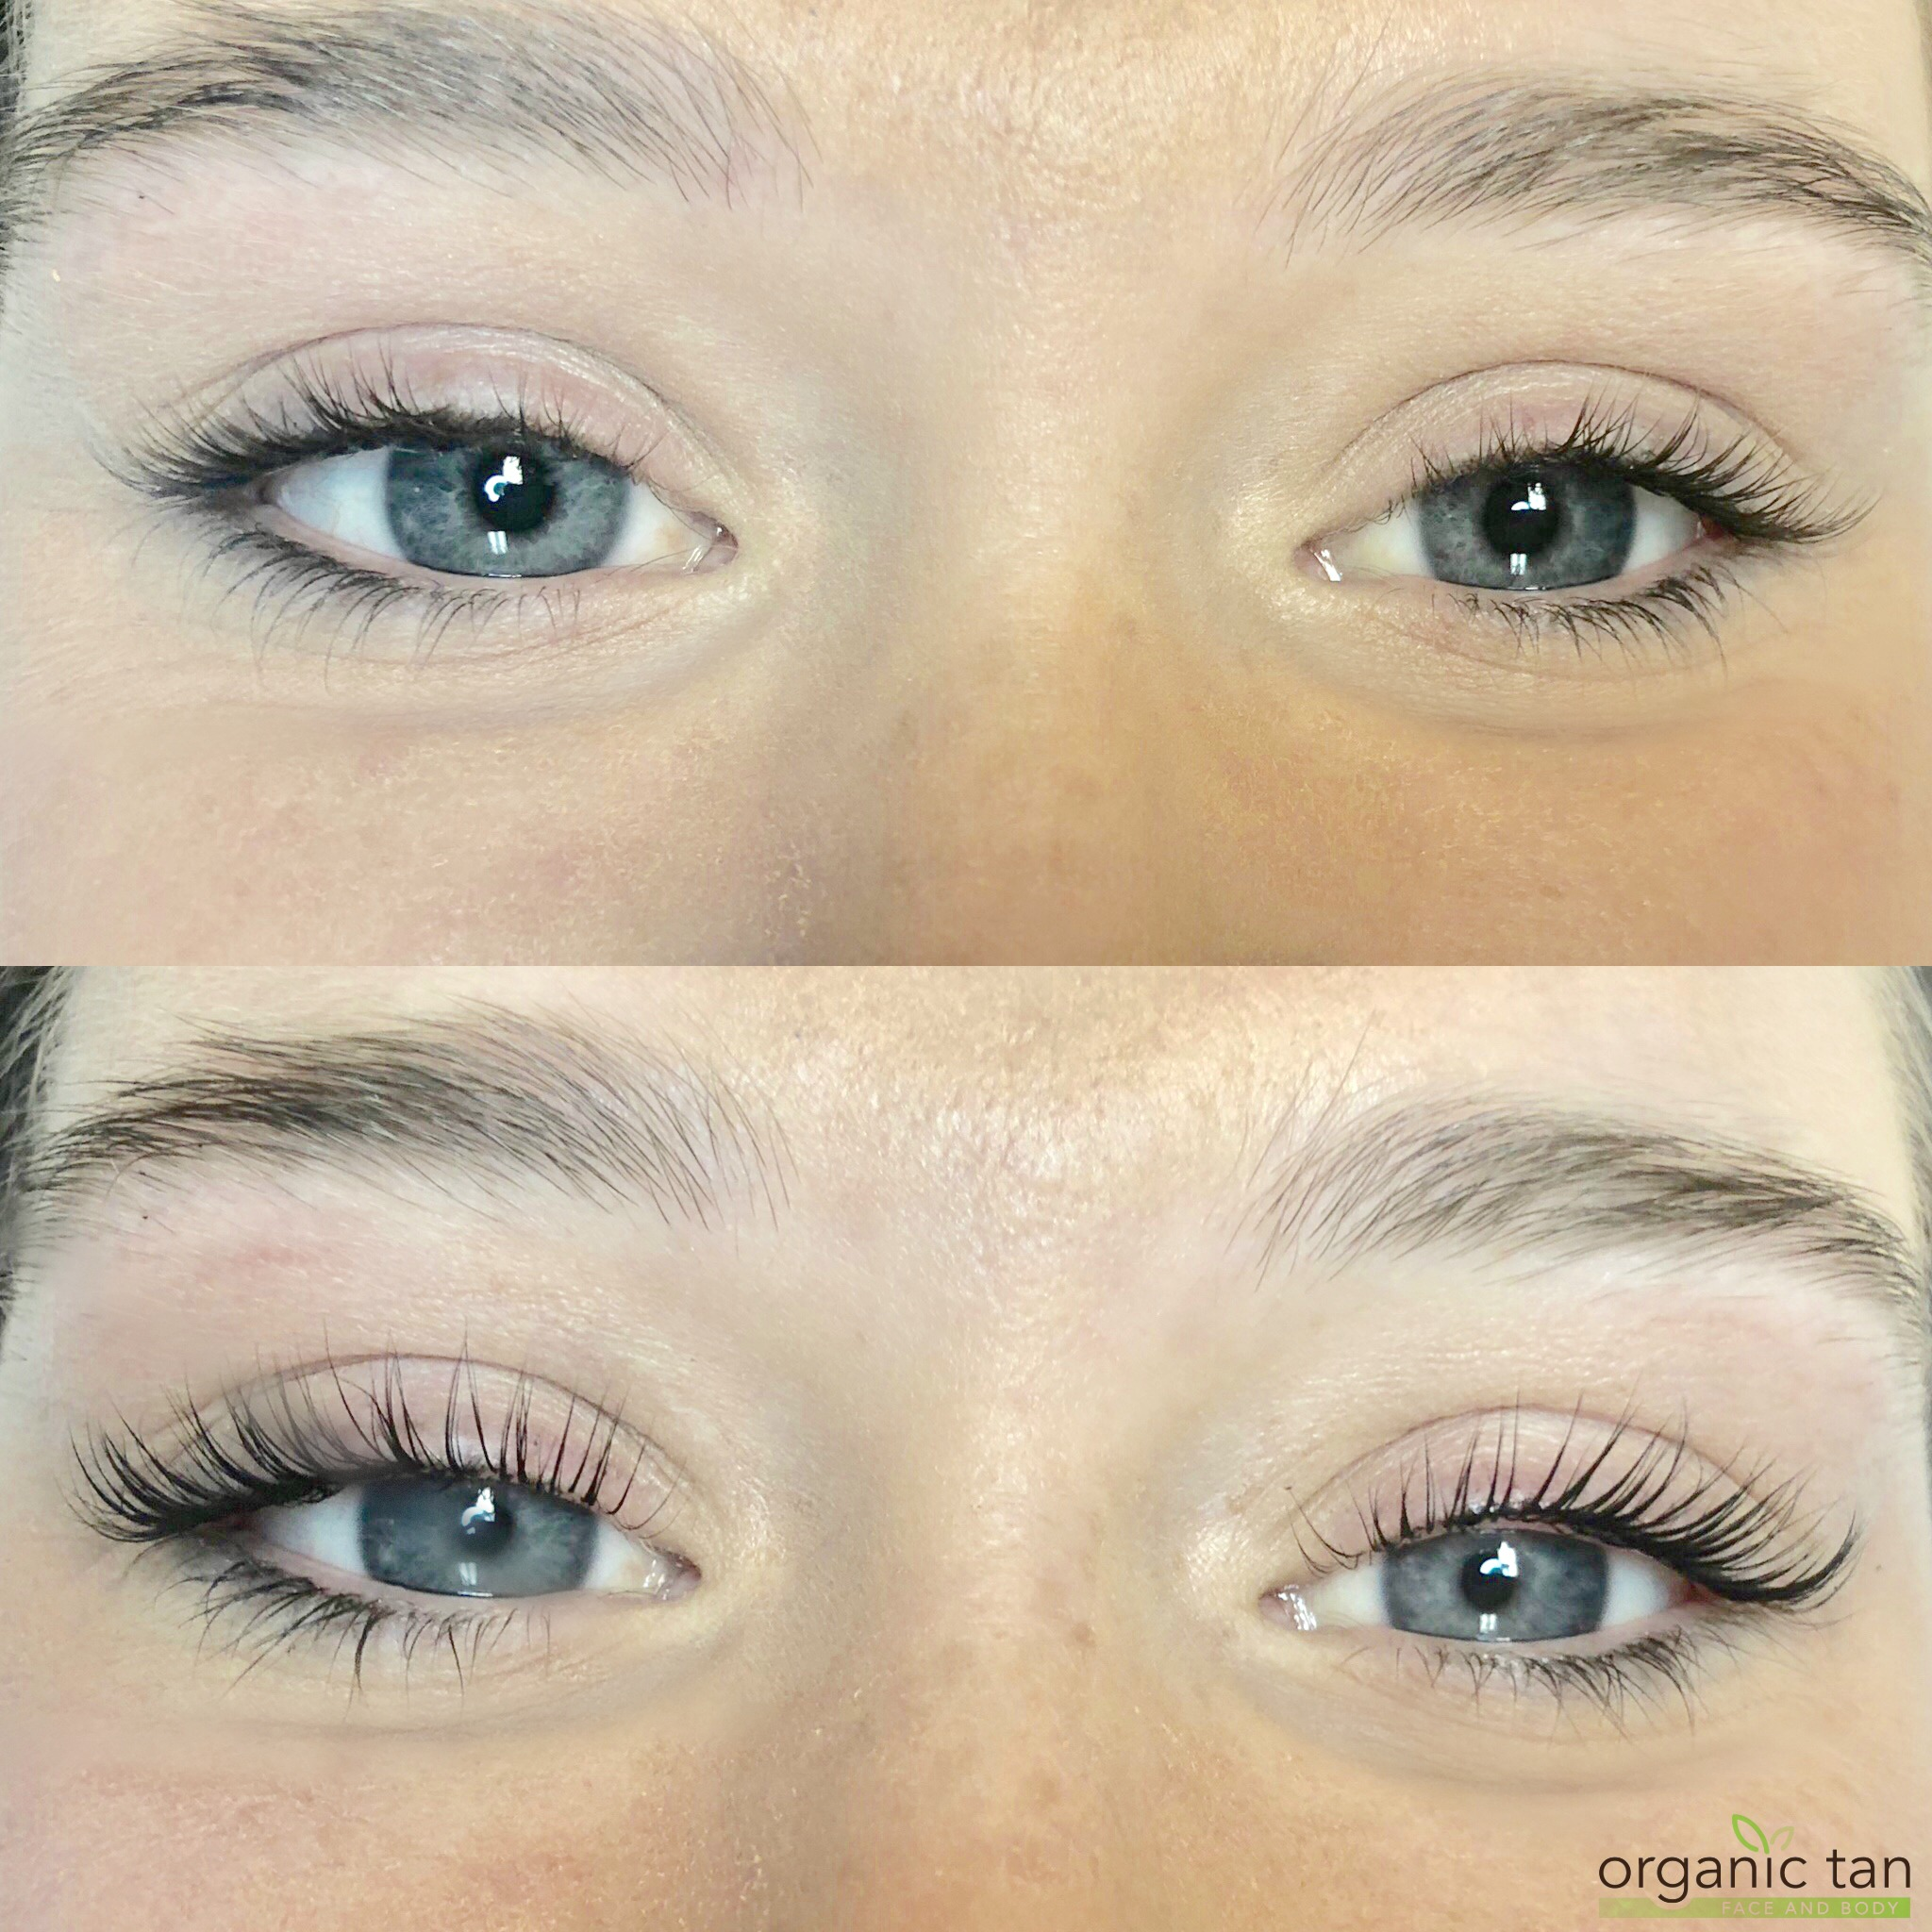 c6ce81d6e0c What is a Lash Lift? A Lash Lift is a semi-permanent curl to your upper  lashes. It lasts anywhere from 4-6 weeks! Unlike extensions, it does not  add any ...